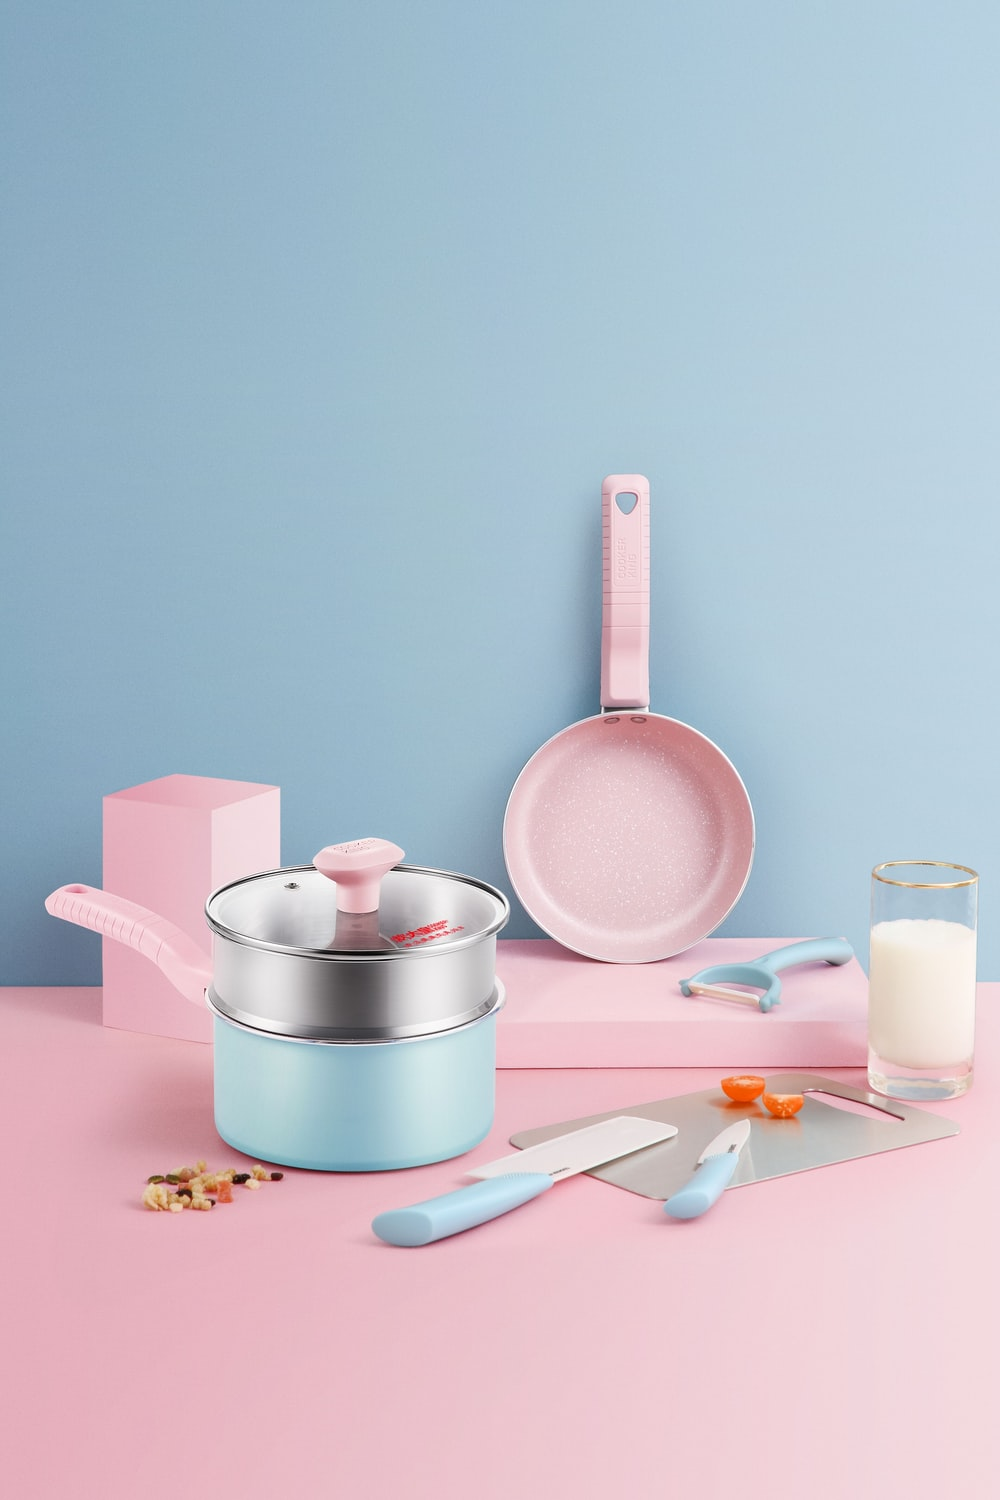 stainless steel cooking pot on pink table